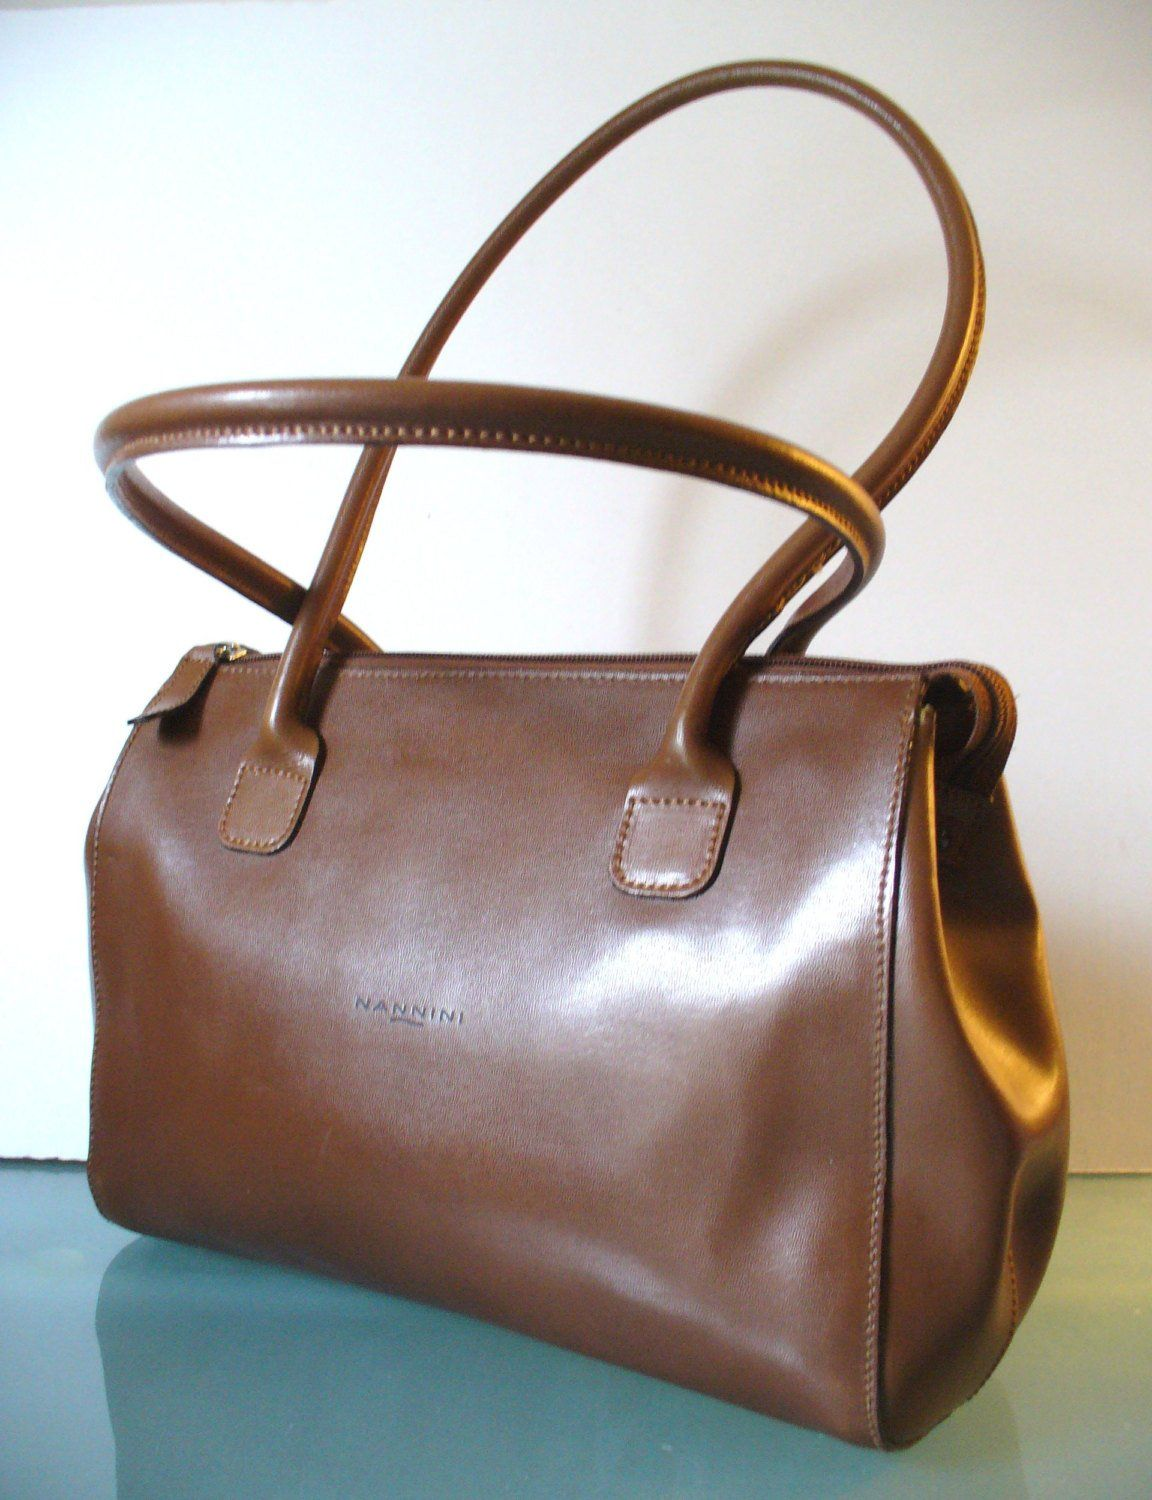 Nannini Made In Italy Cocoa Leather Tote Bag By Eurotraaly On Etsy